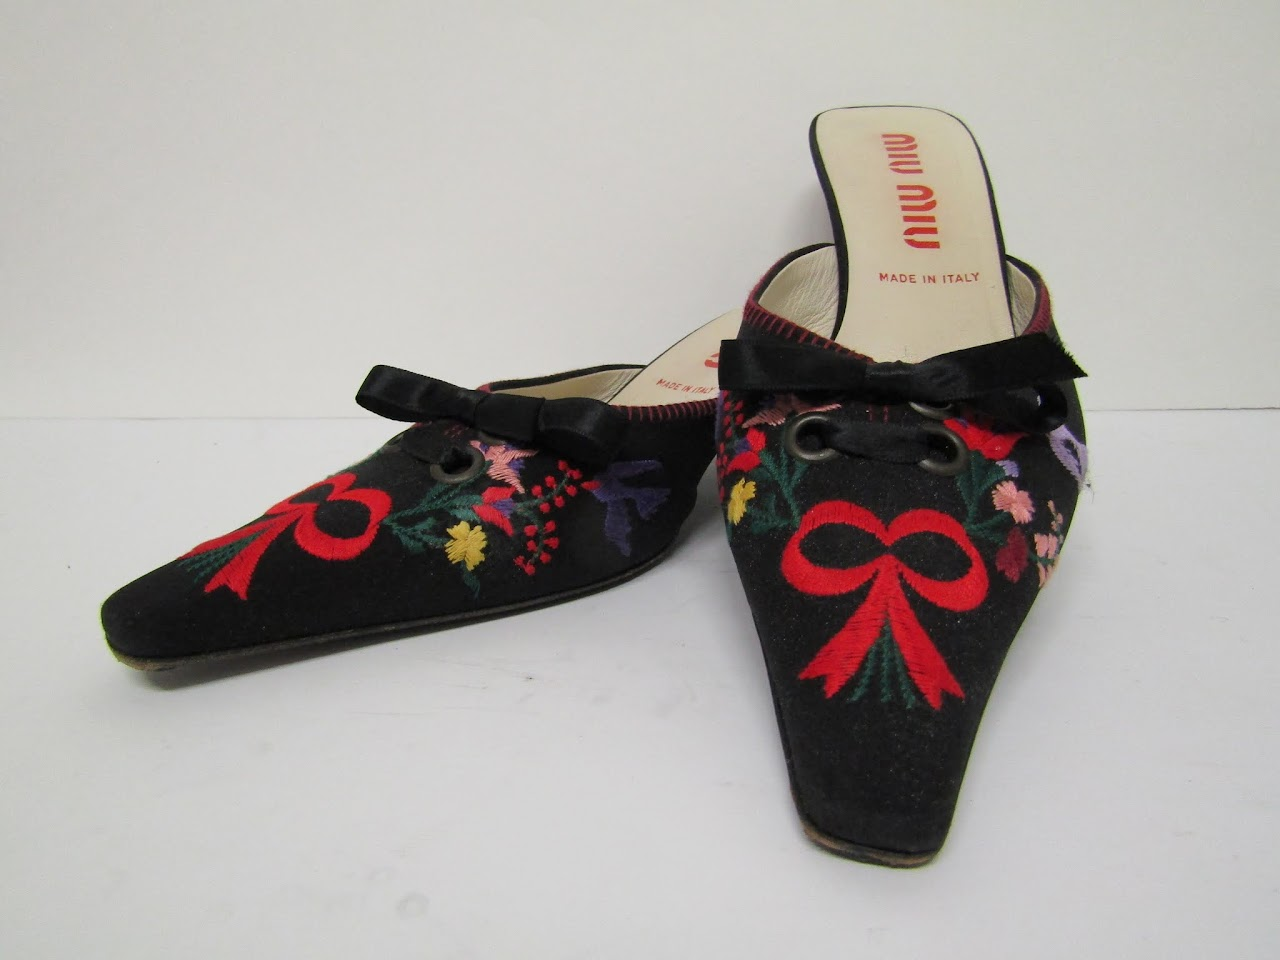 Miu Miu Embroidered Mules